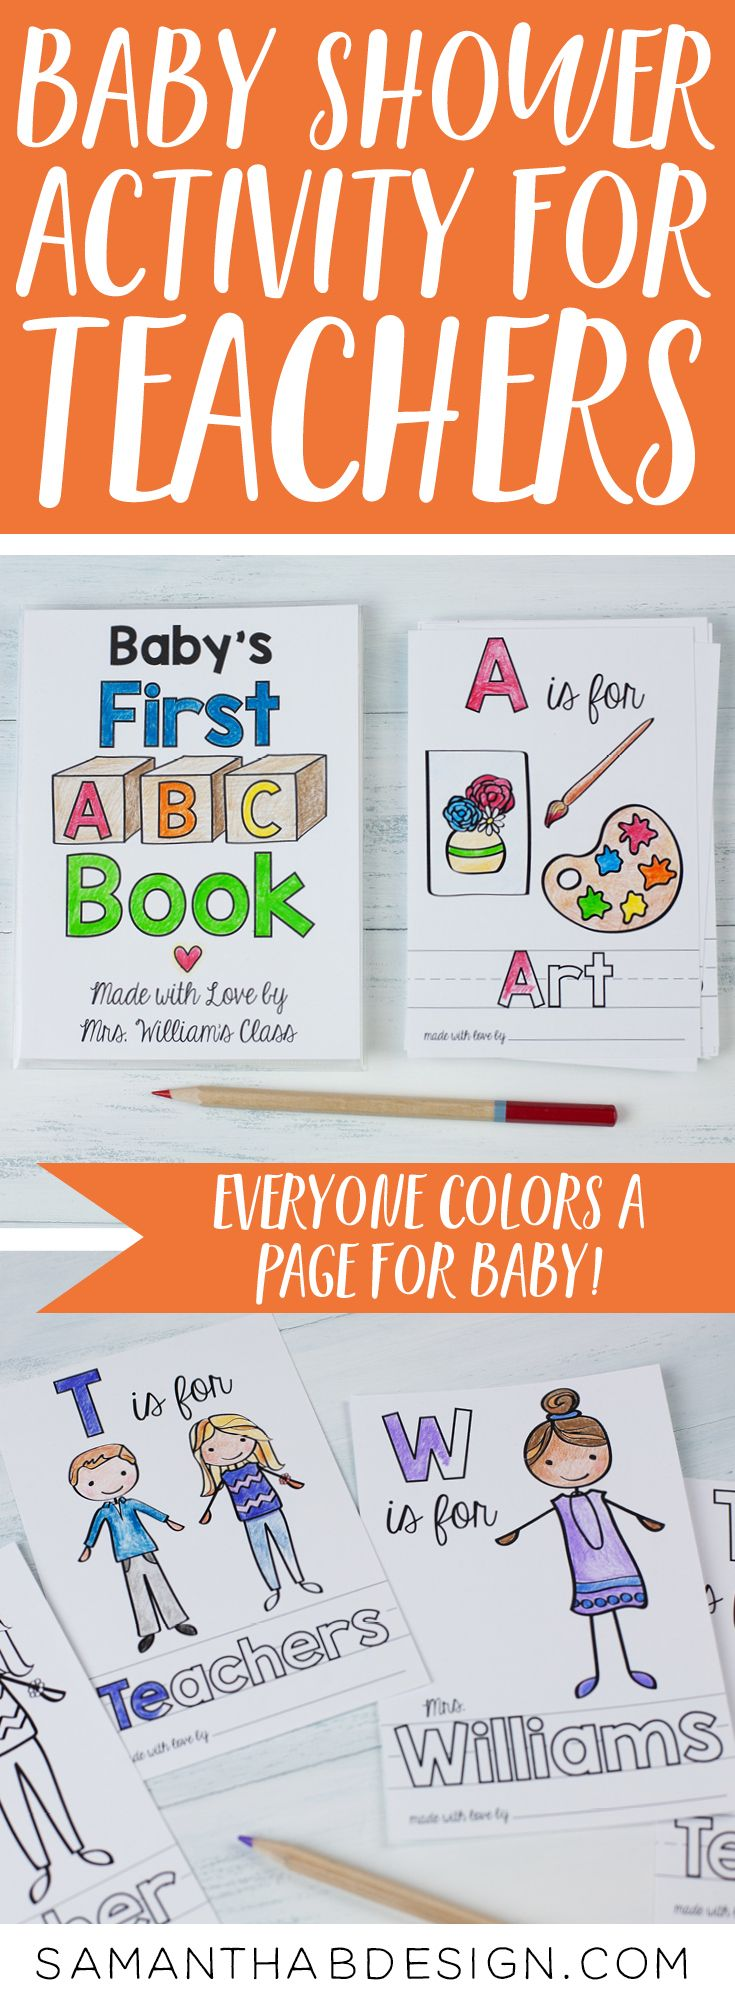 Abc Book Baby Shower Activity In School Theme Perfect Etsy Baby Shower Activities Baby Shower Book Shower Activity